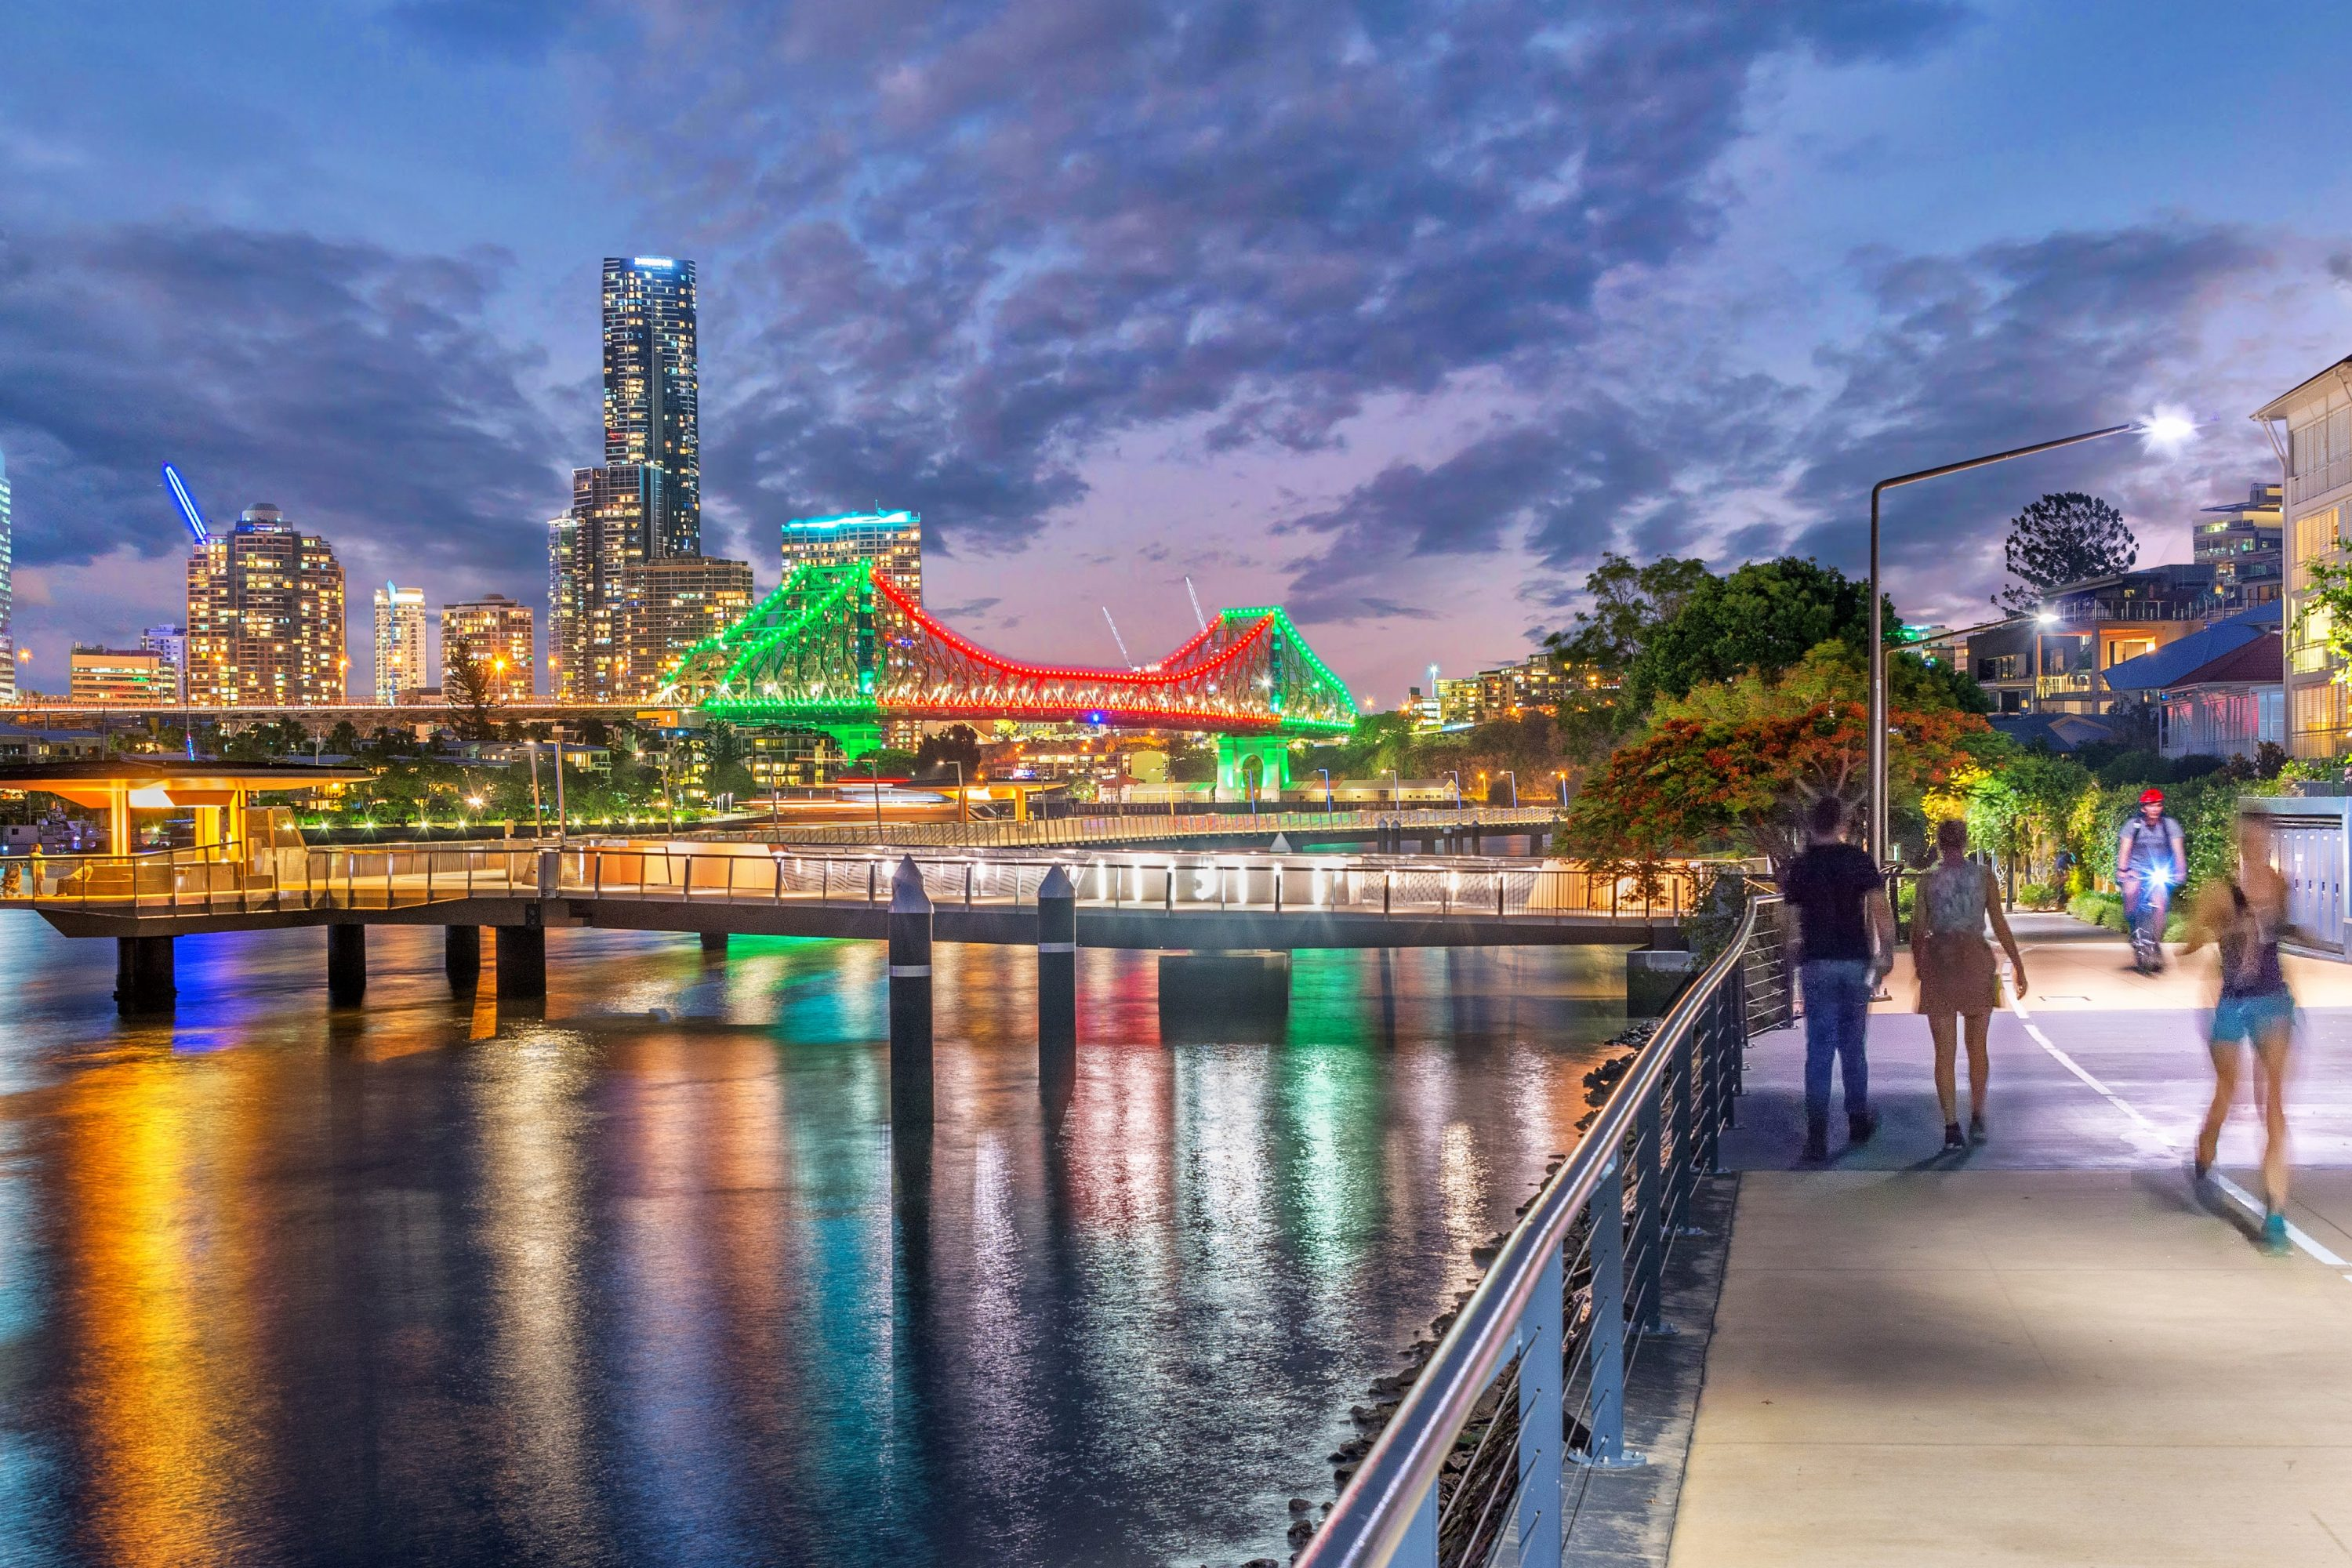 Real estate agent | Brisbane | Why invest in Brisbane?